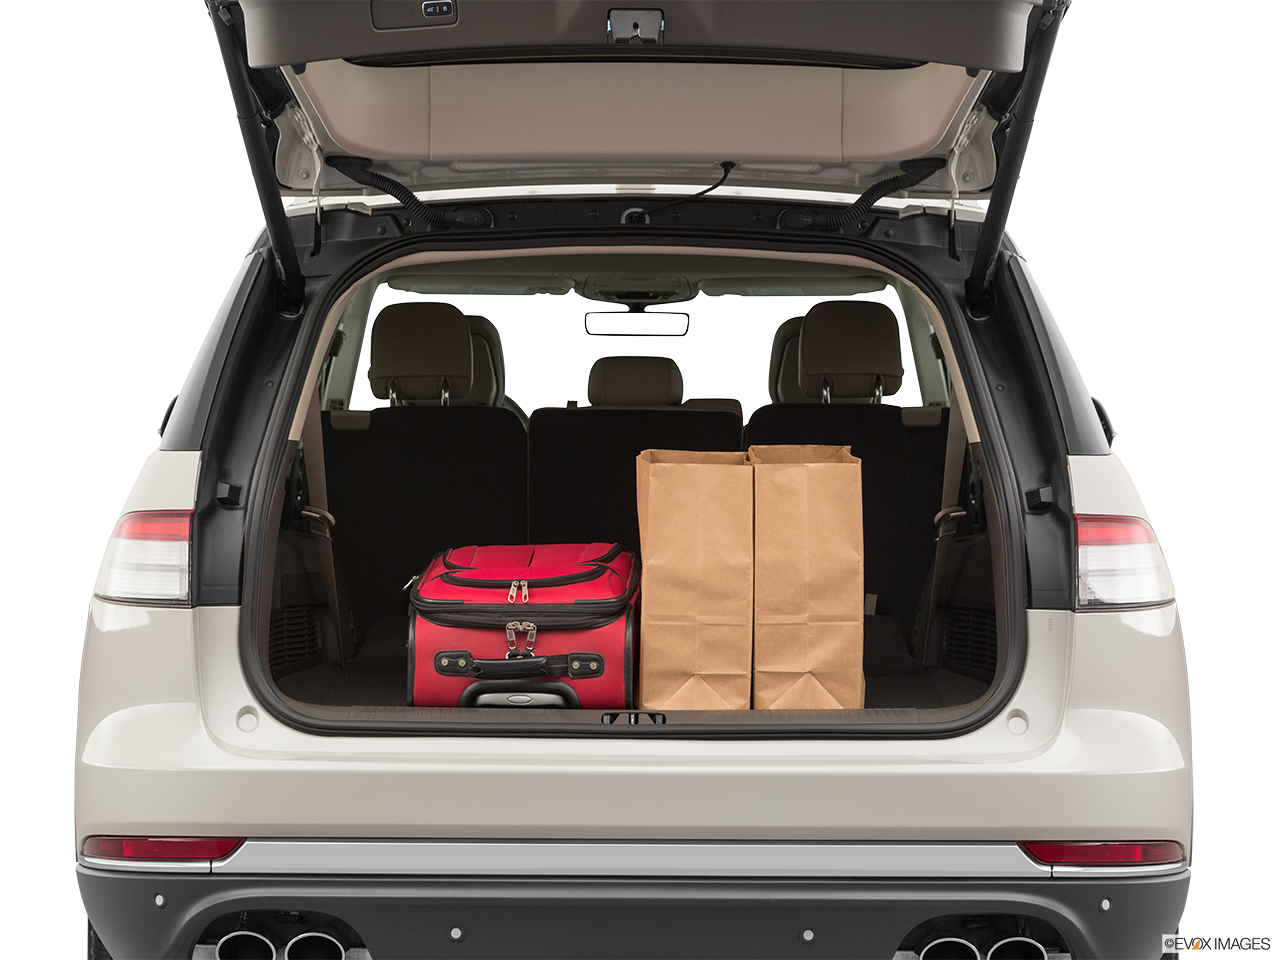 Trunk view of the Lincoln Aviator Grand Touring